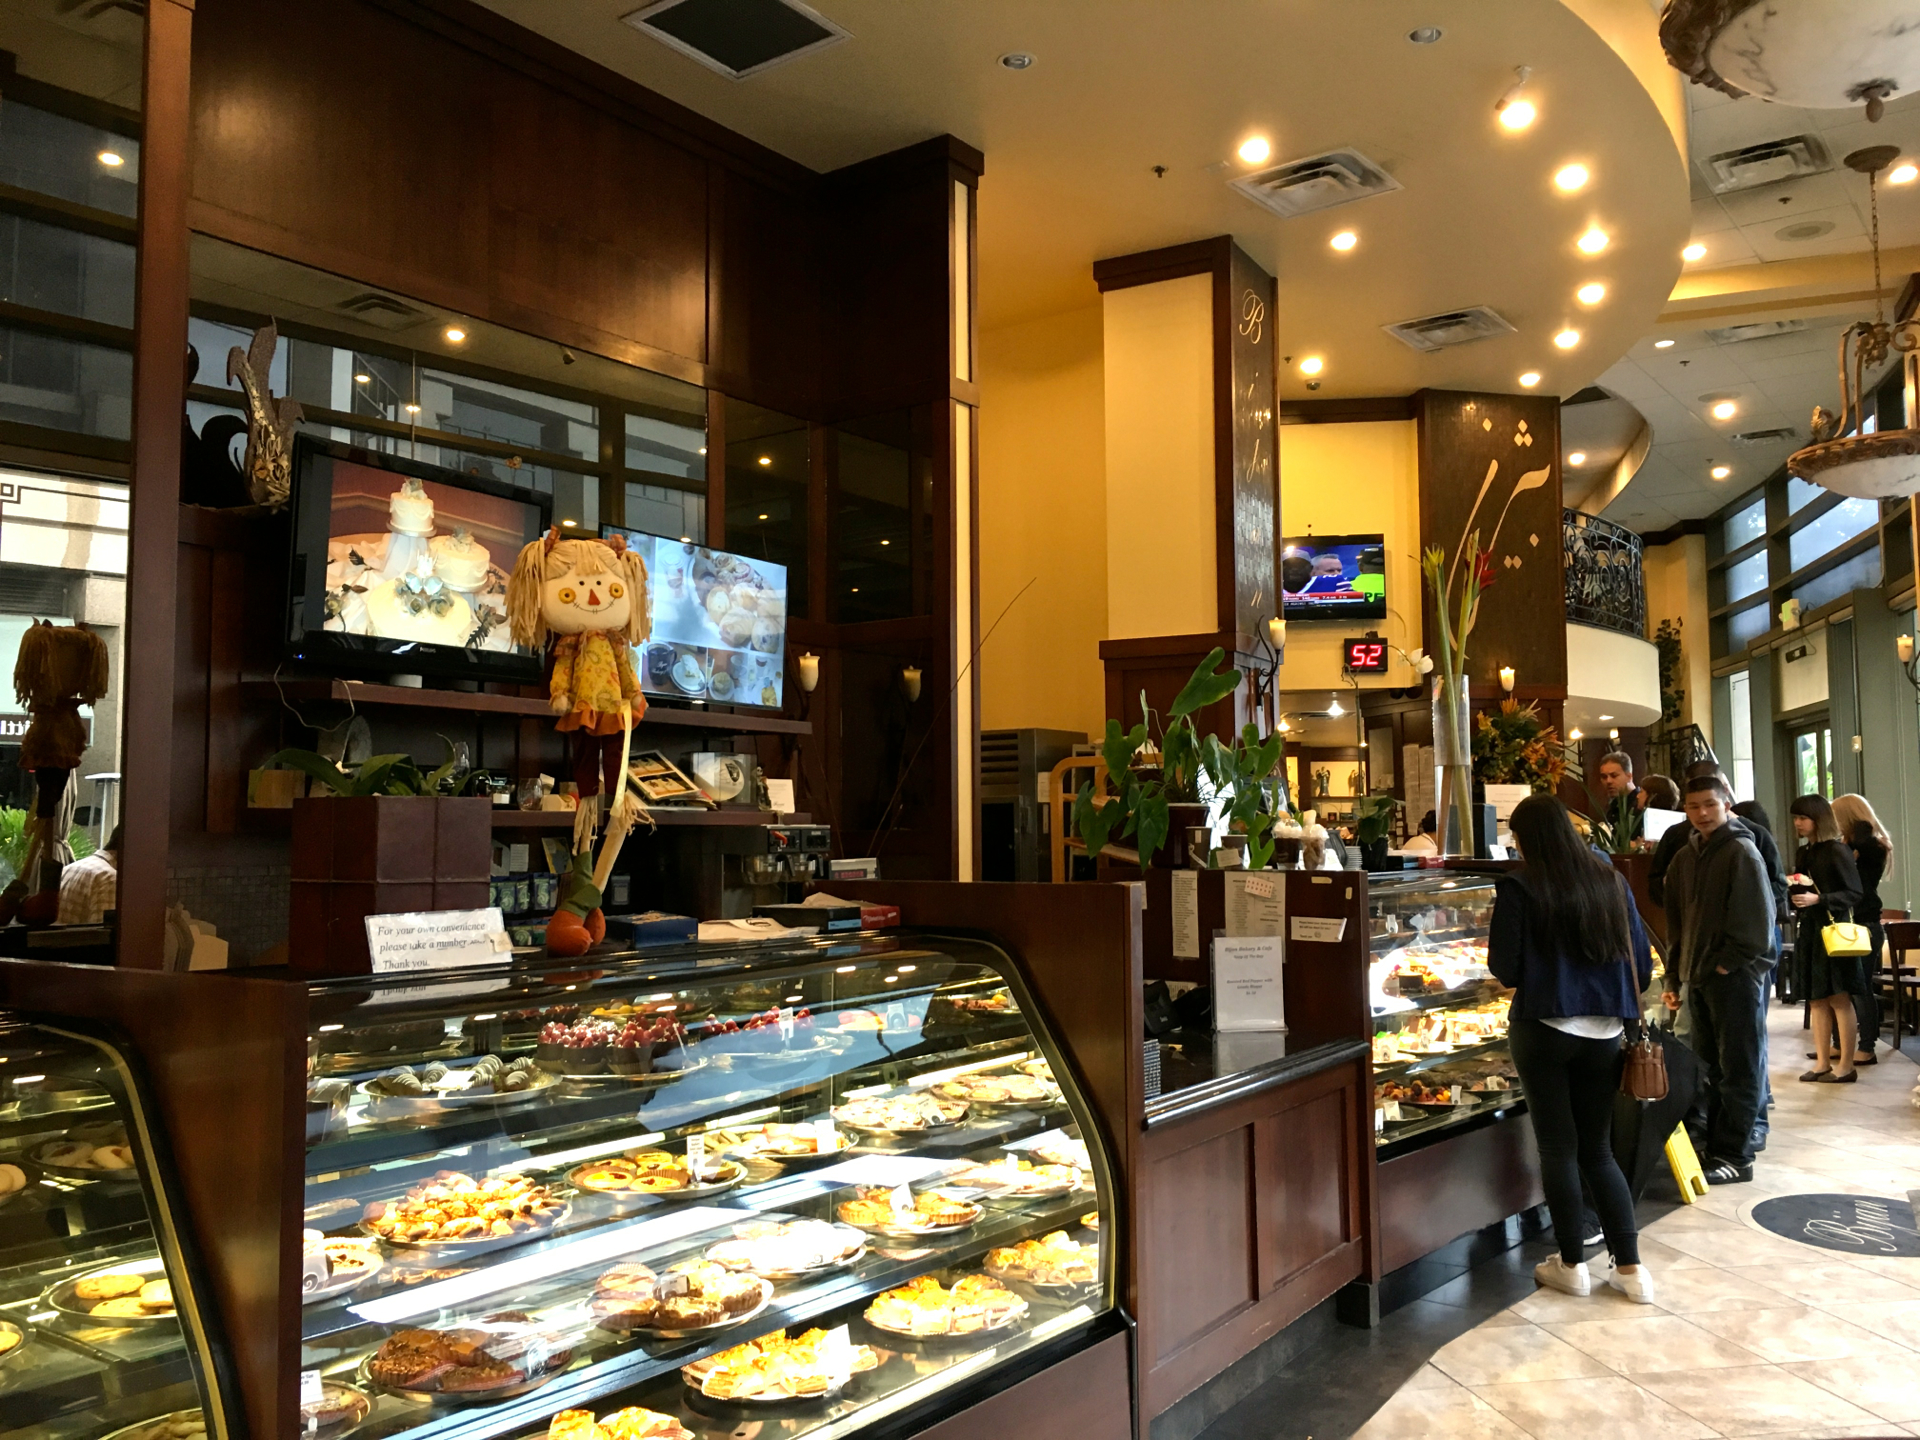 Inside Bijan Bakery & Cafe.